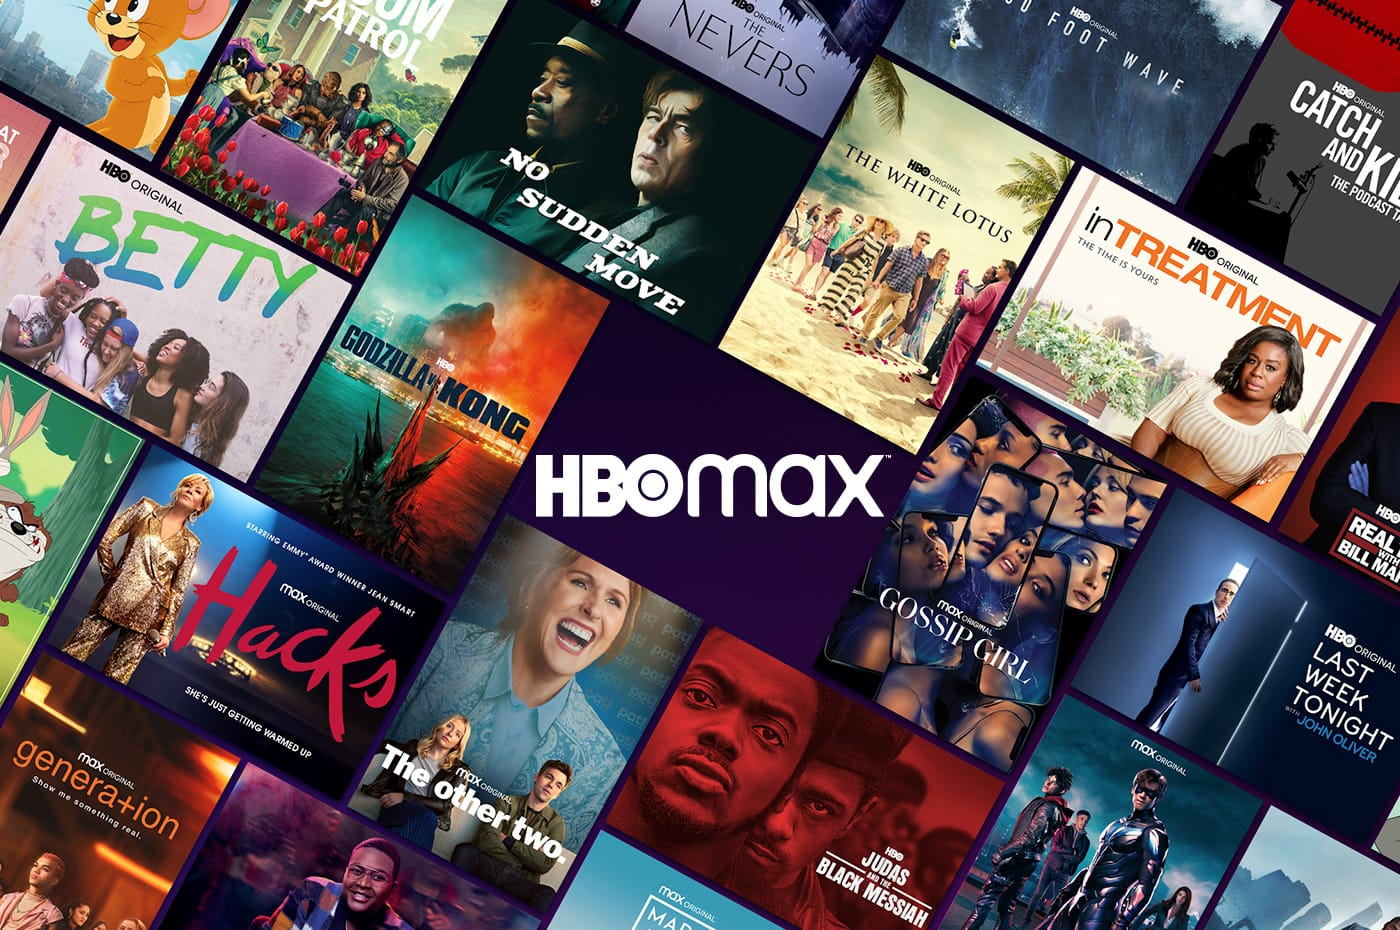 various shows on hbo max